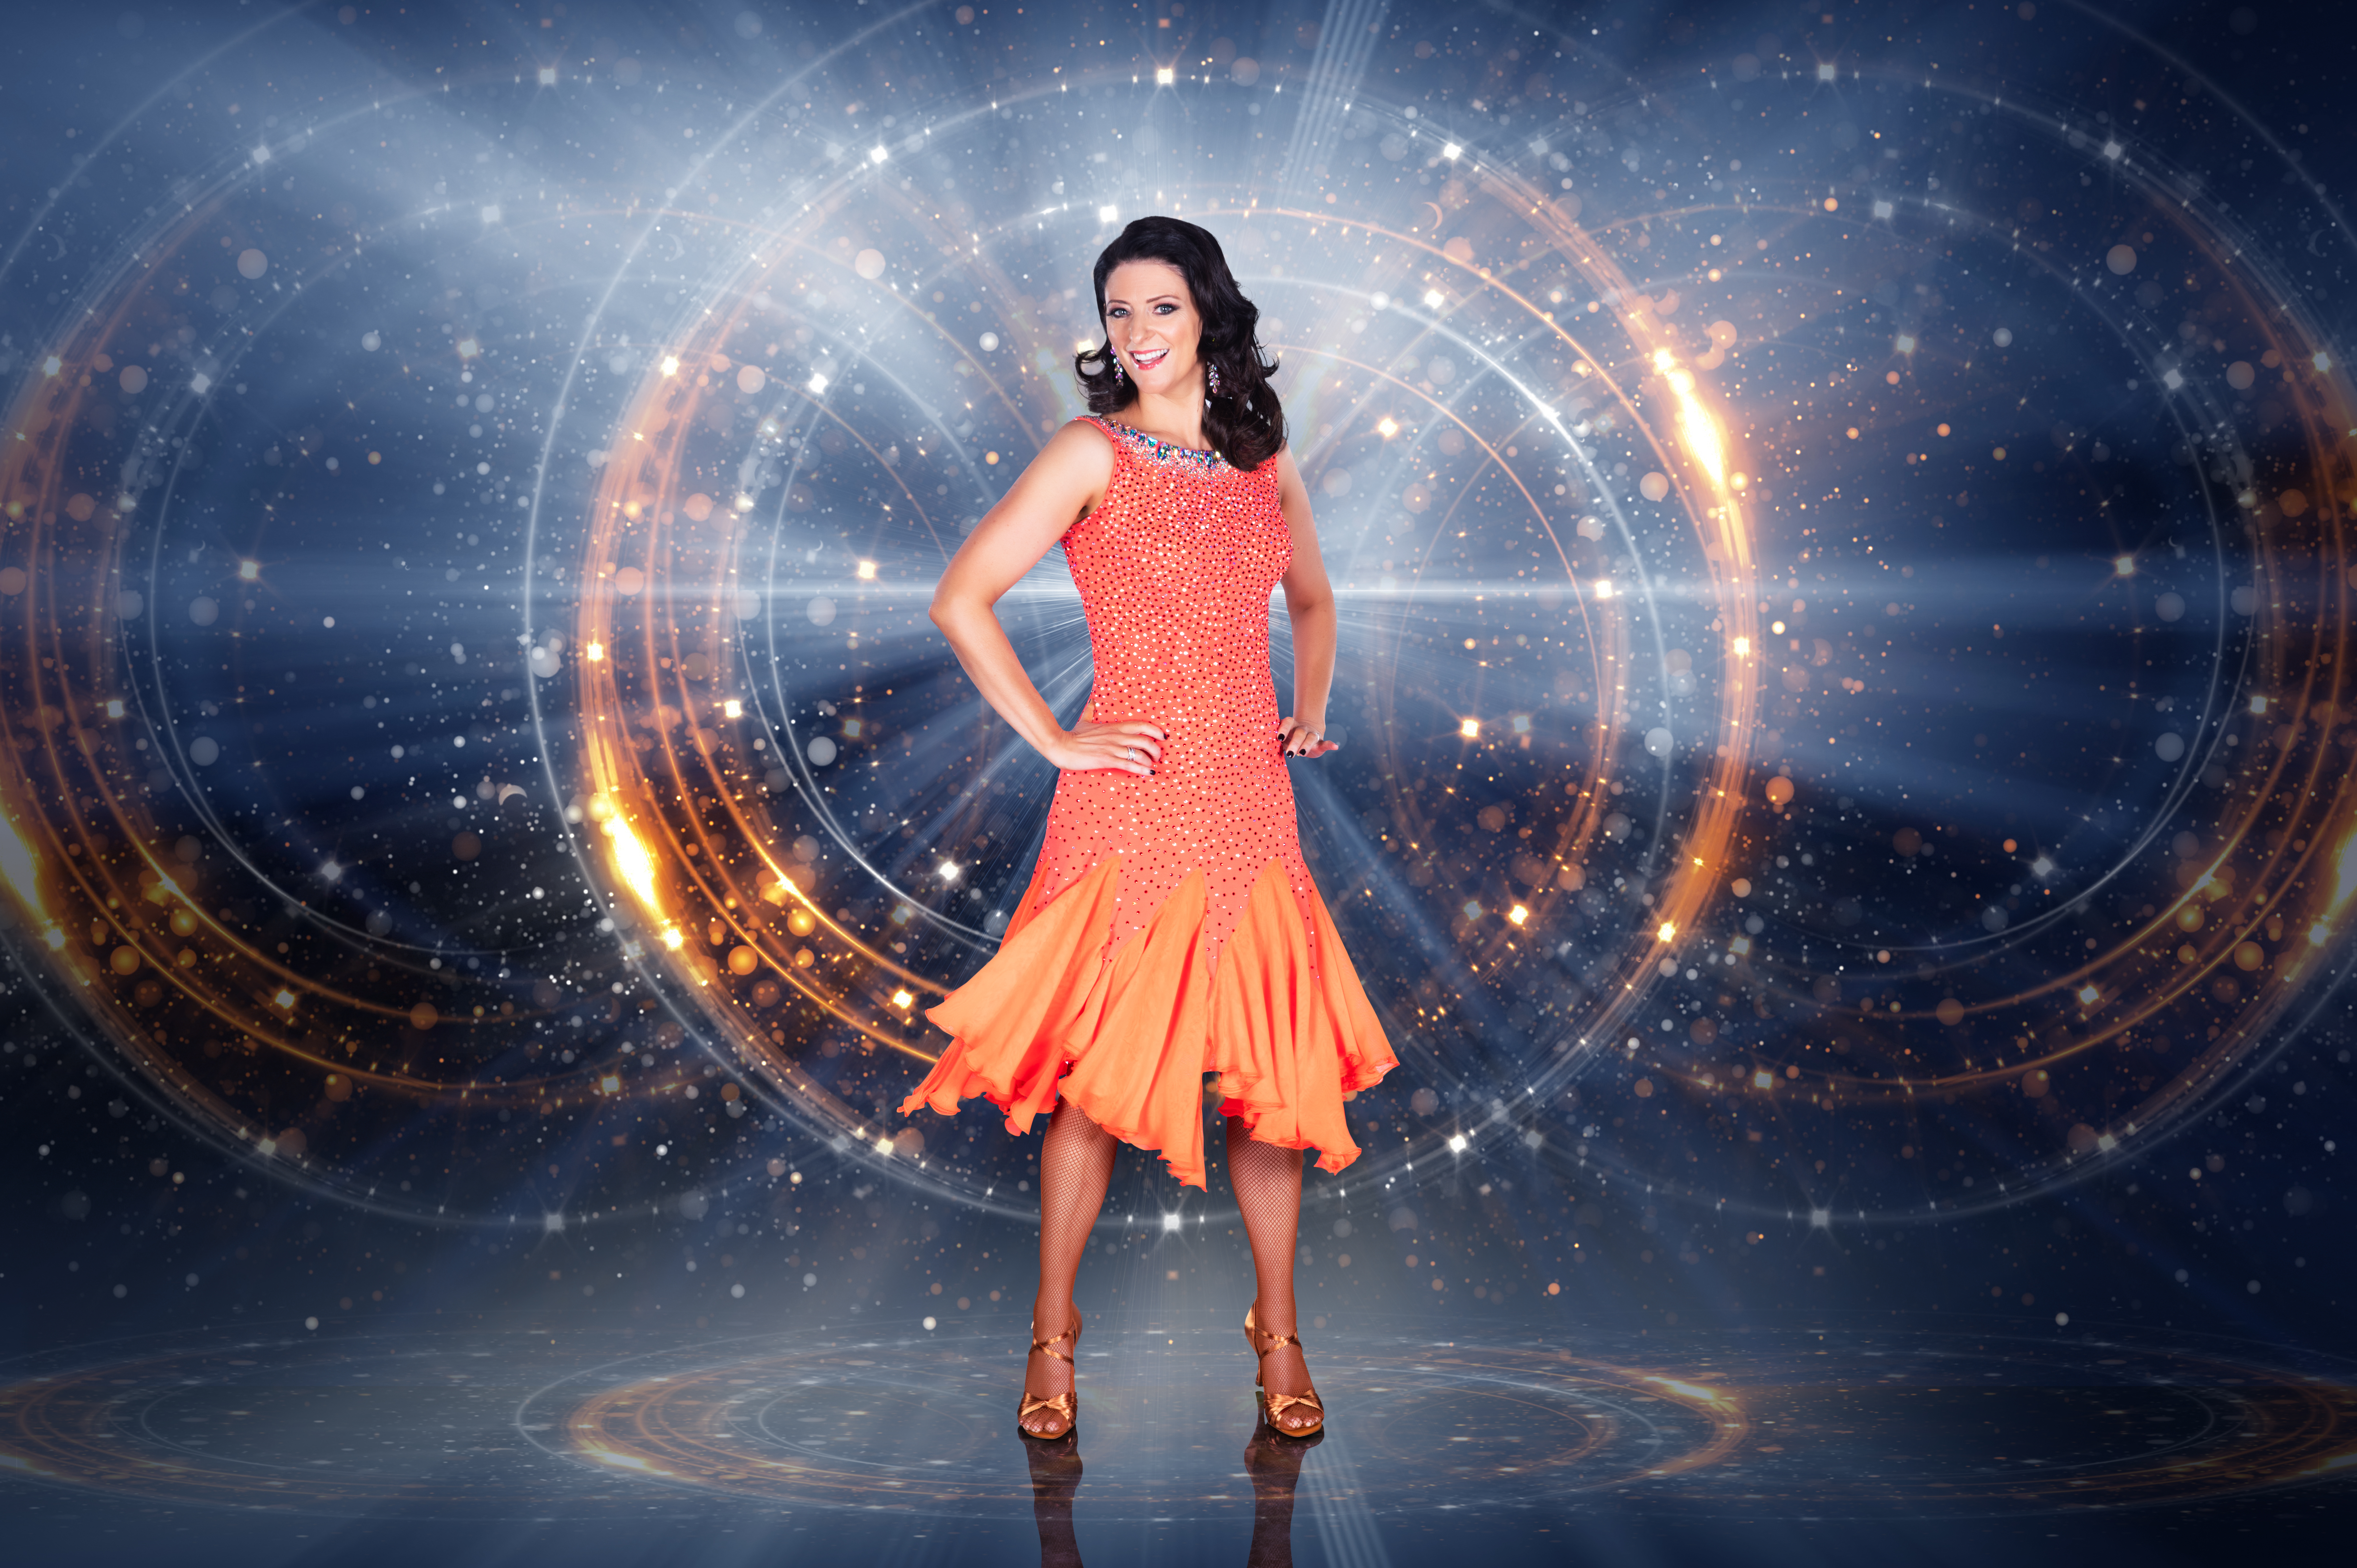 Sinead Dancing with the stars